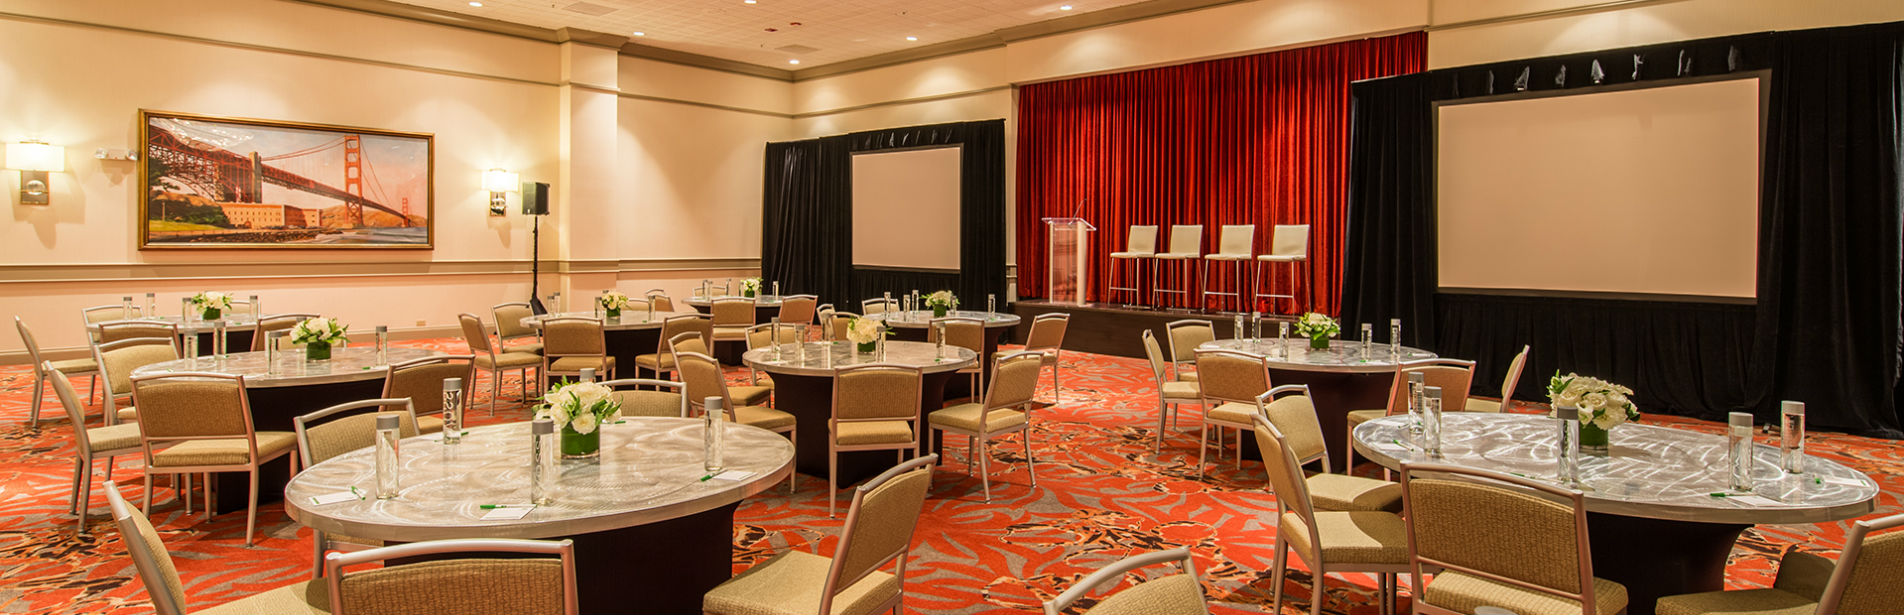 image of our ballroom set in banquet table rounds of 5 with screens and stage